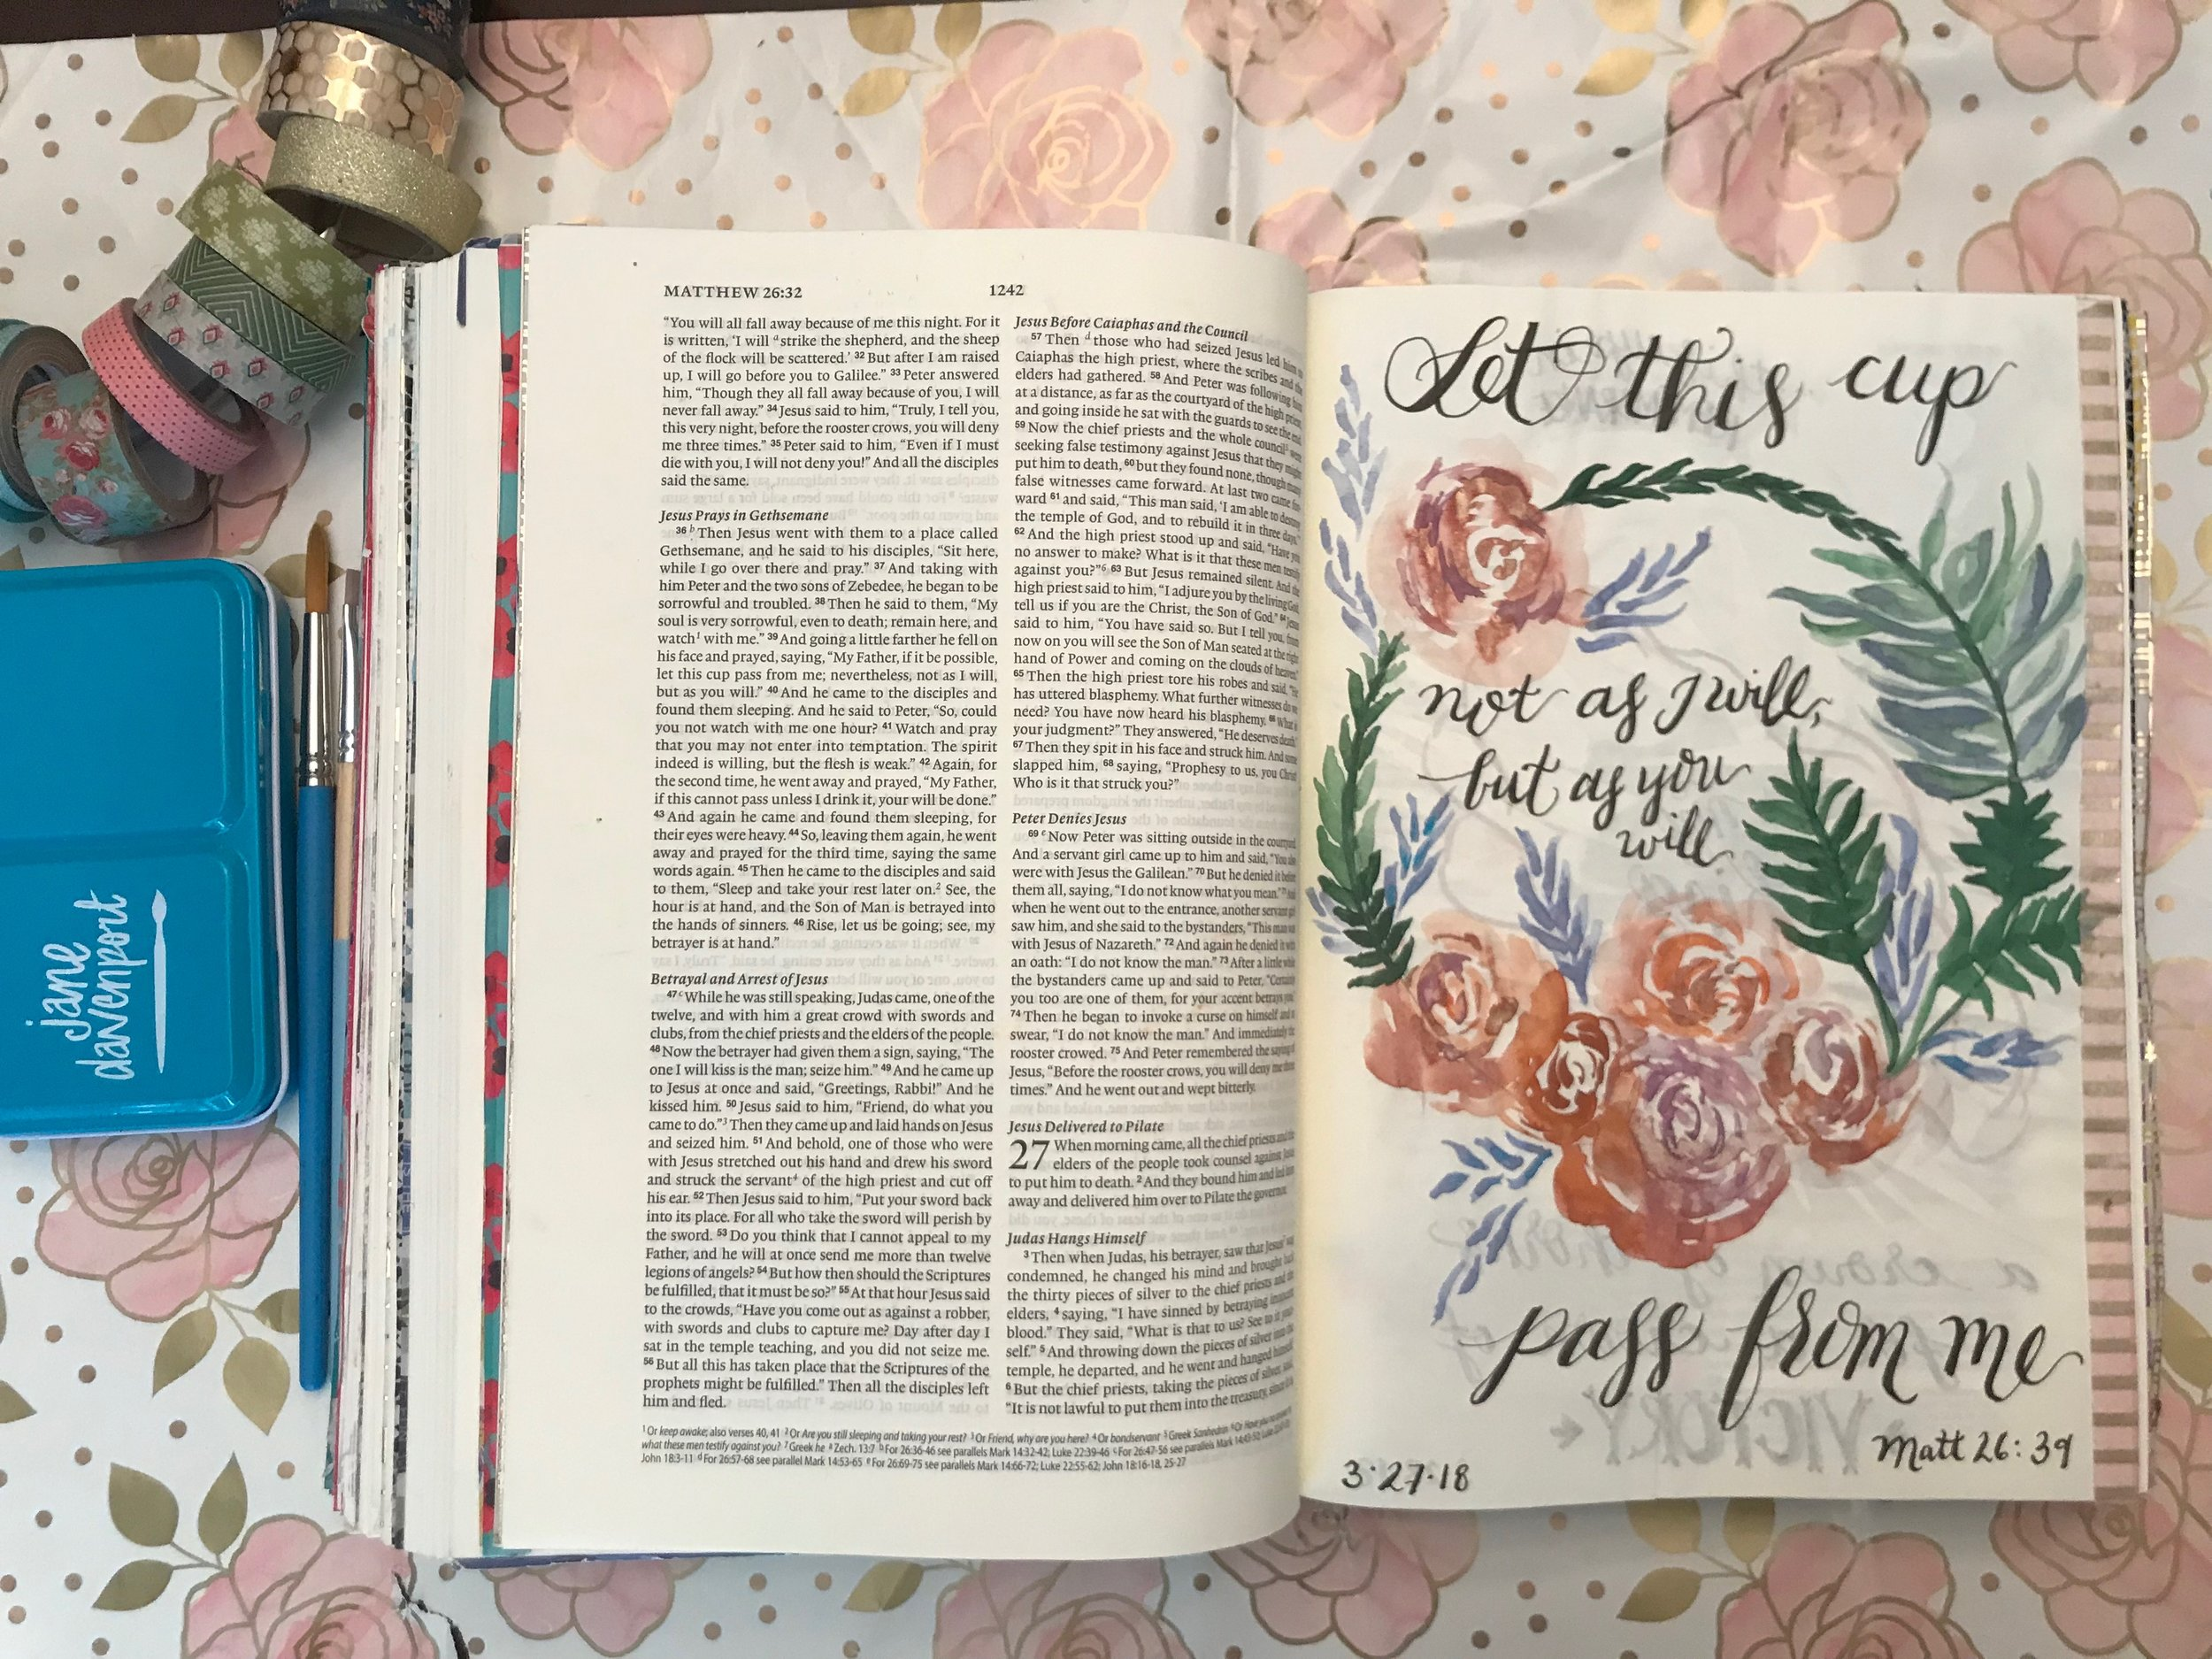 Making pages that resemble the objects designed by the true Artist helps me sit still while I reflect on the beauty He designed. I love taking the opportunity to reflect God's creation glory back to Him.